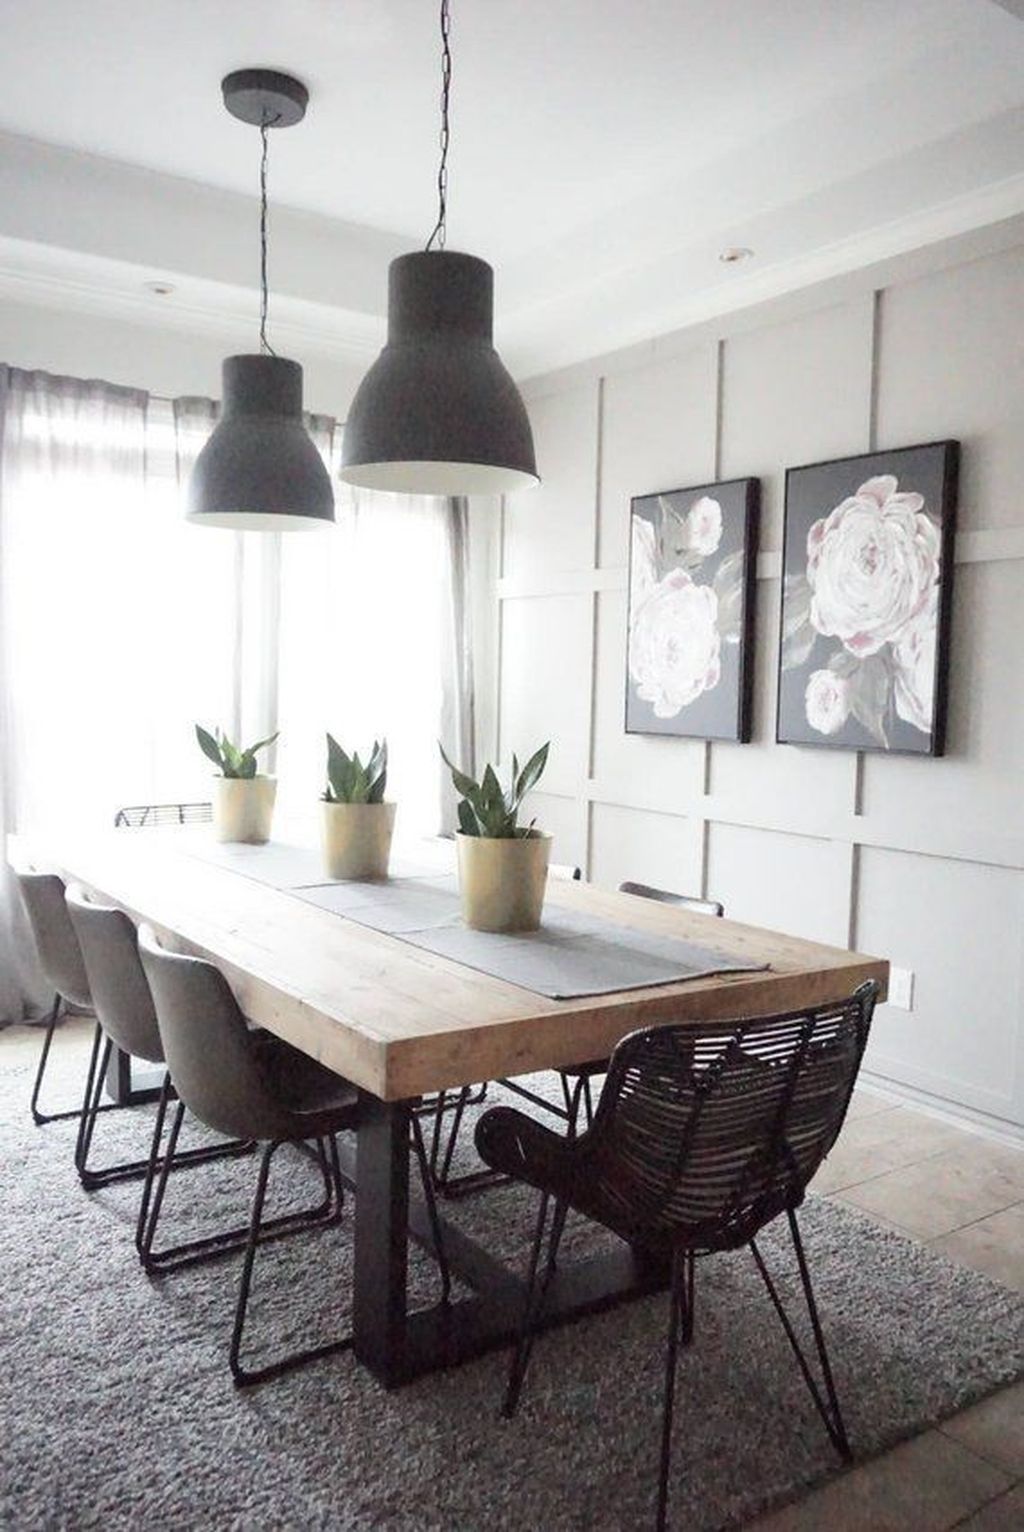 20+ Trendy Dining Table Design Ideas That Looks Amazing   With all of the many different prices, si